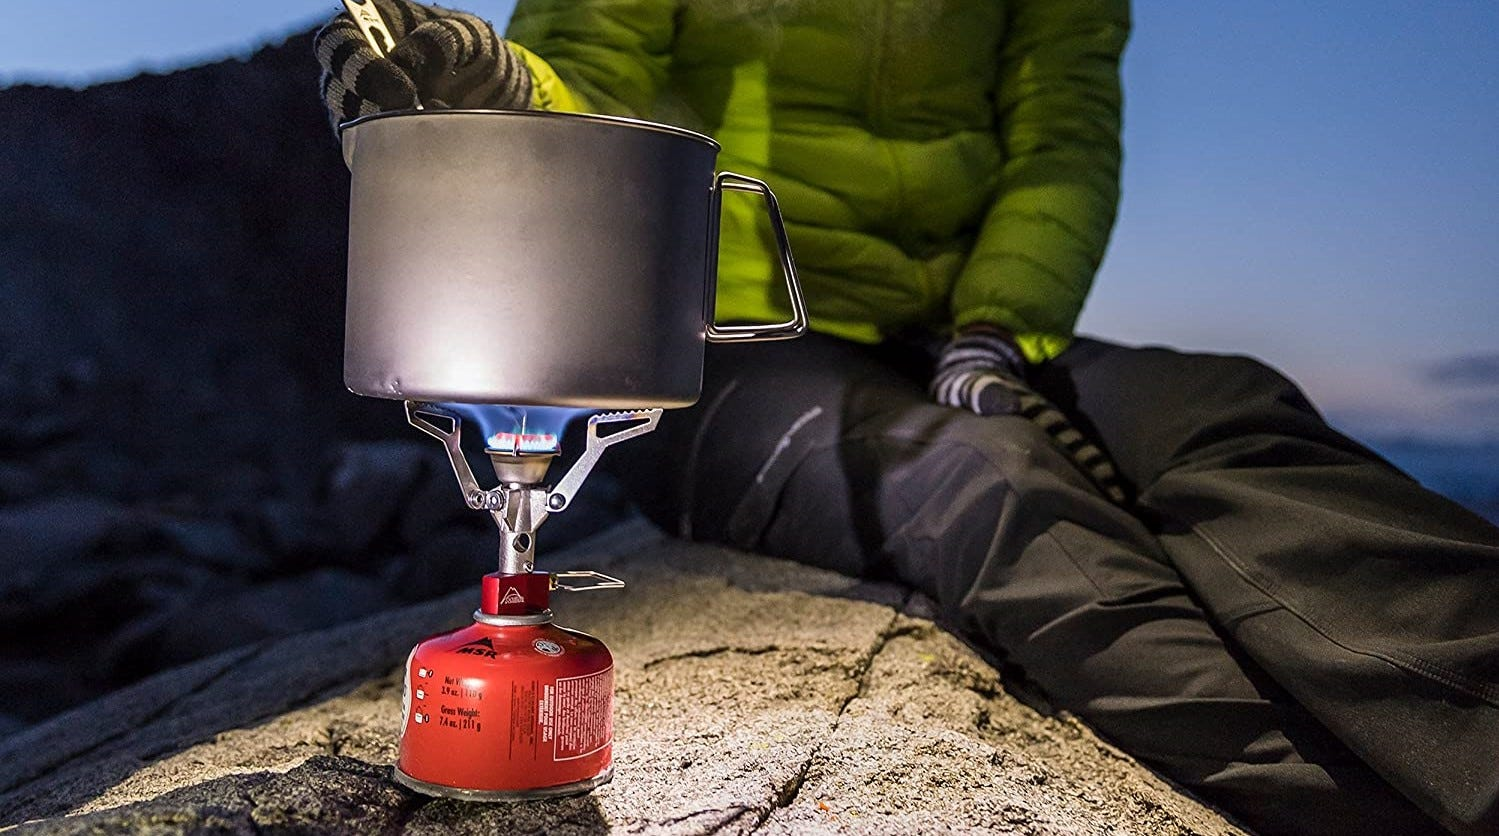 Someone cooking on an MSR PocketRocket Camping stove.